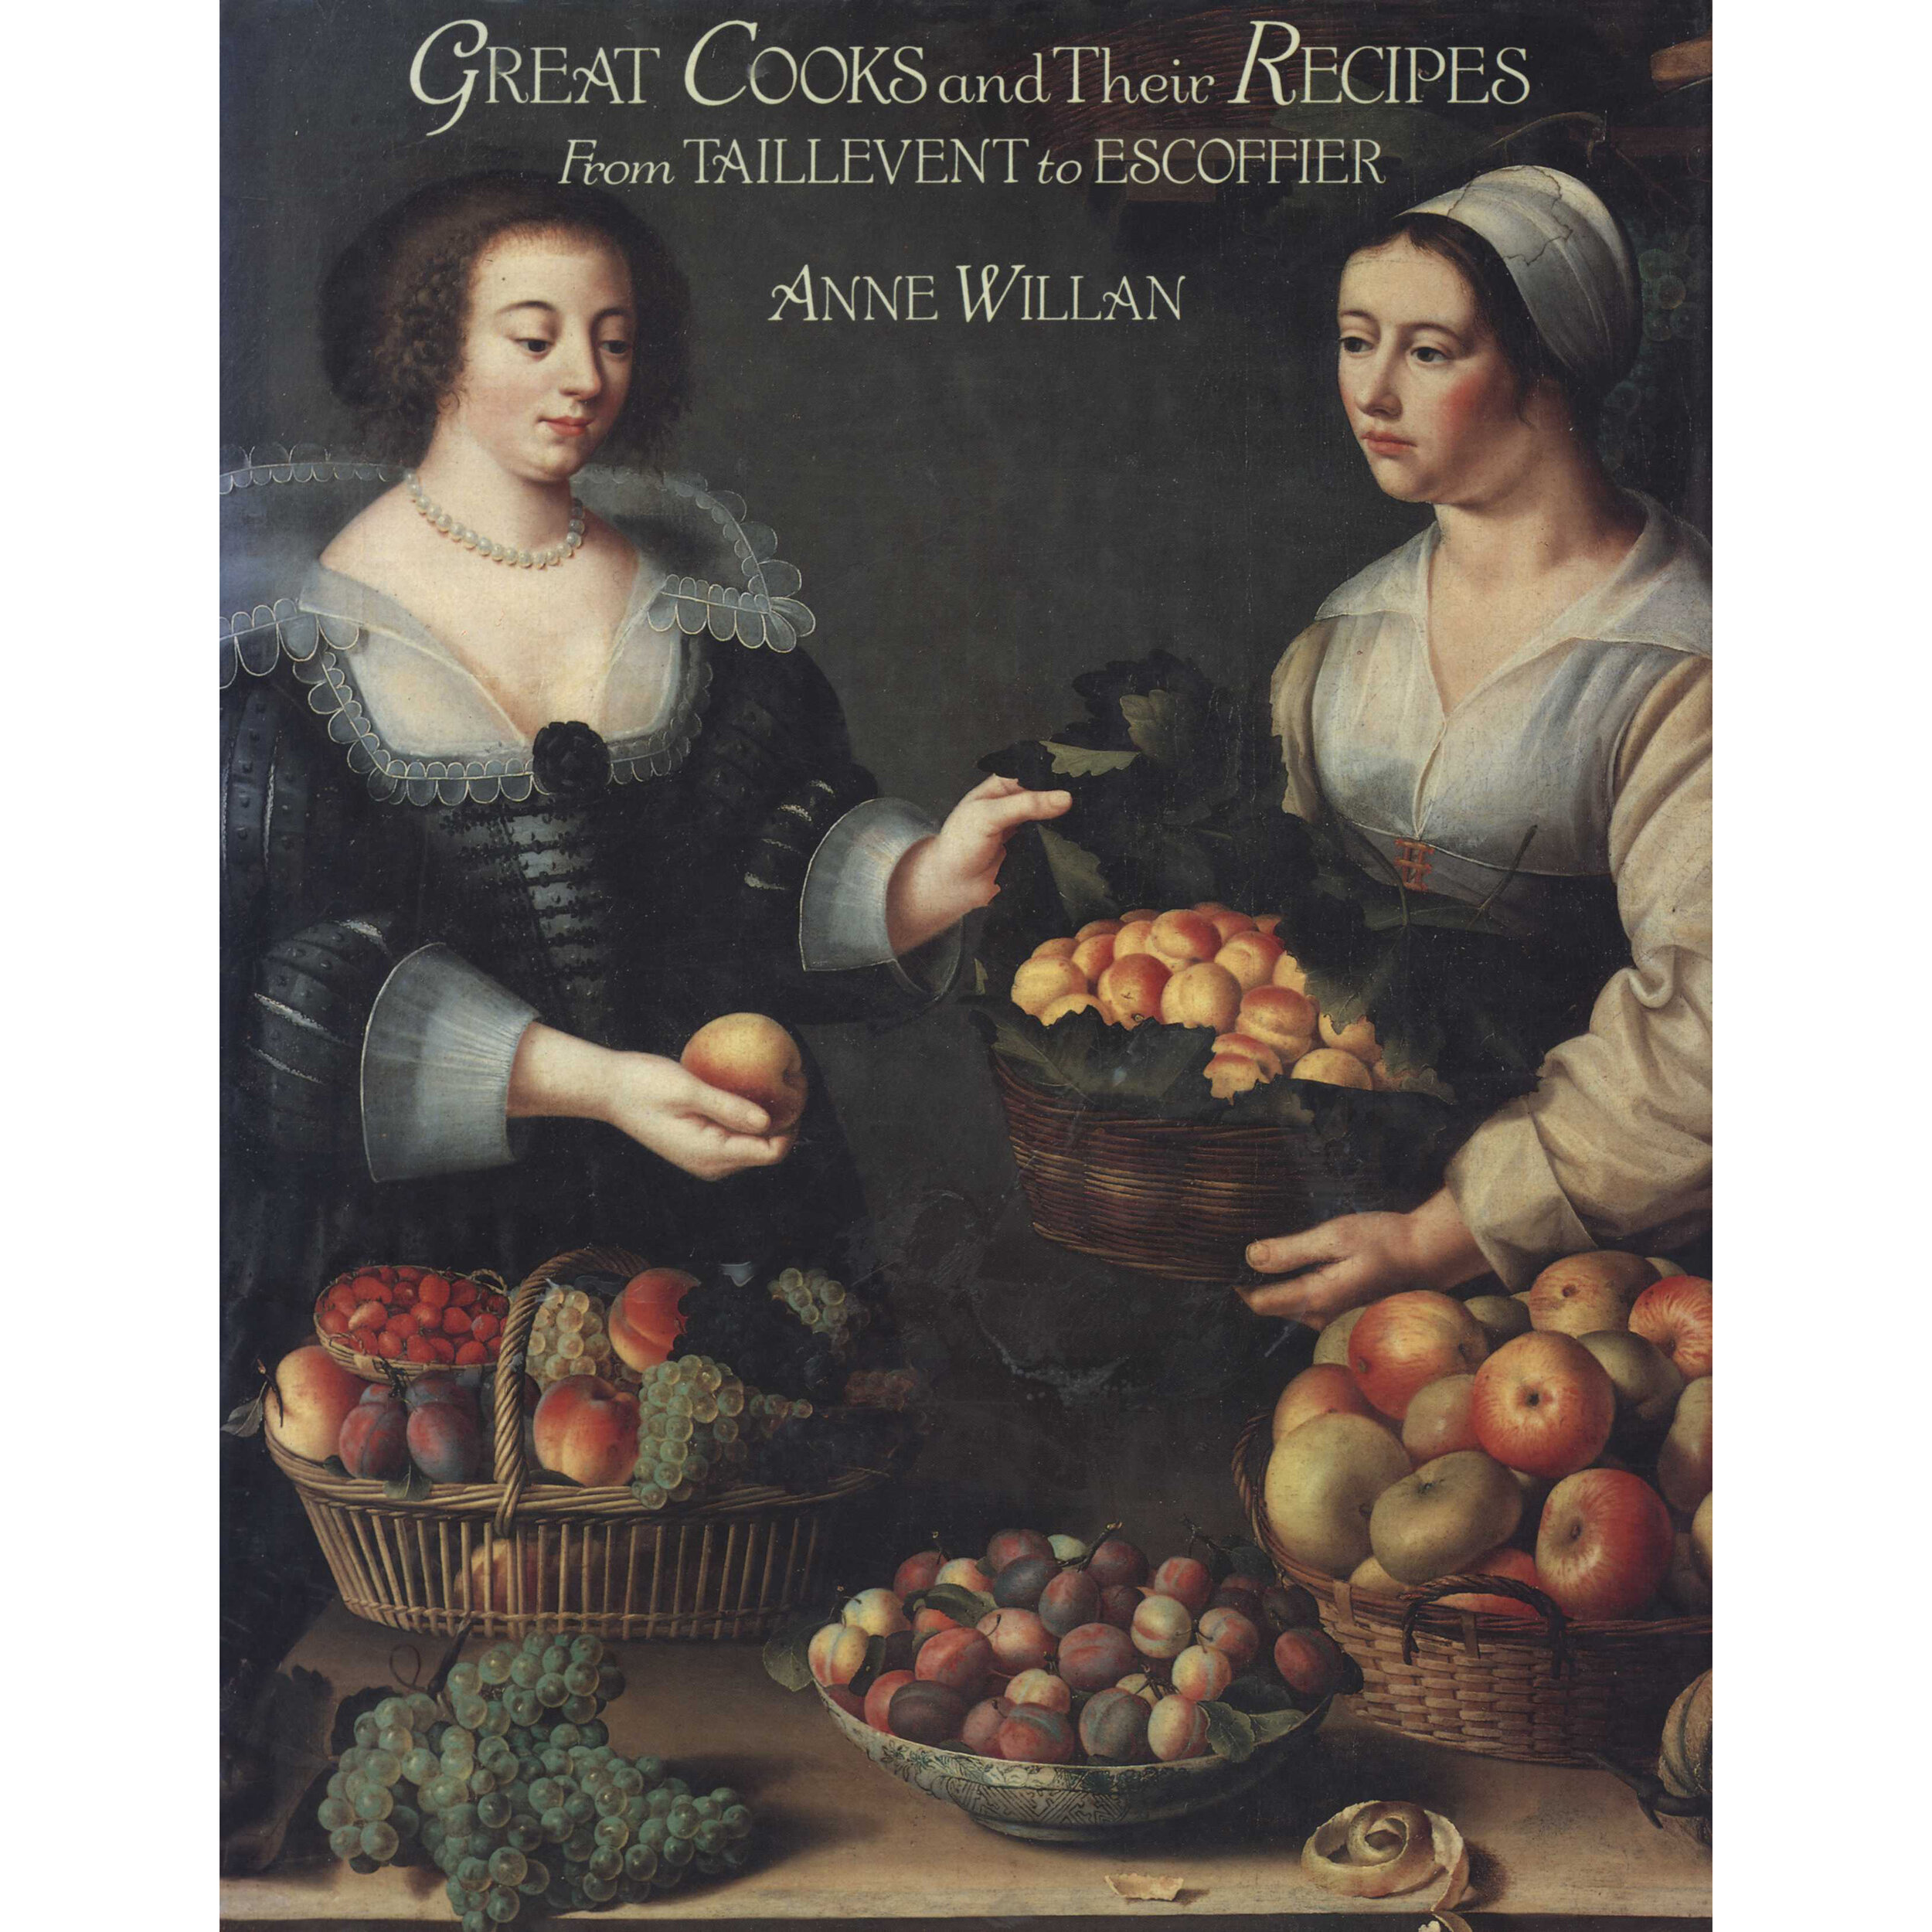 Willan - Great Cooks and Their Recipes - 9781851455966.jpg